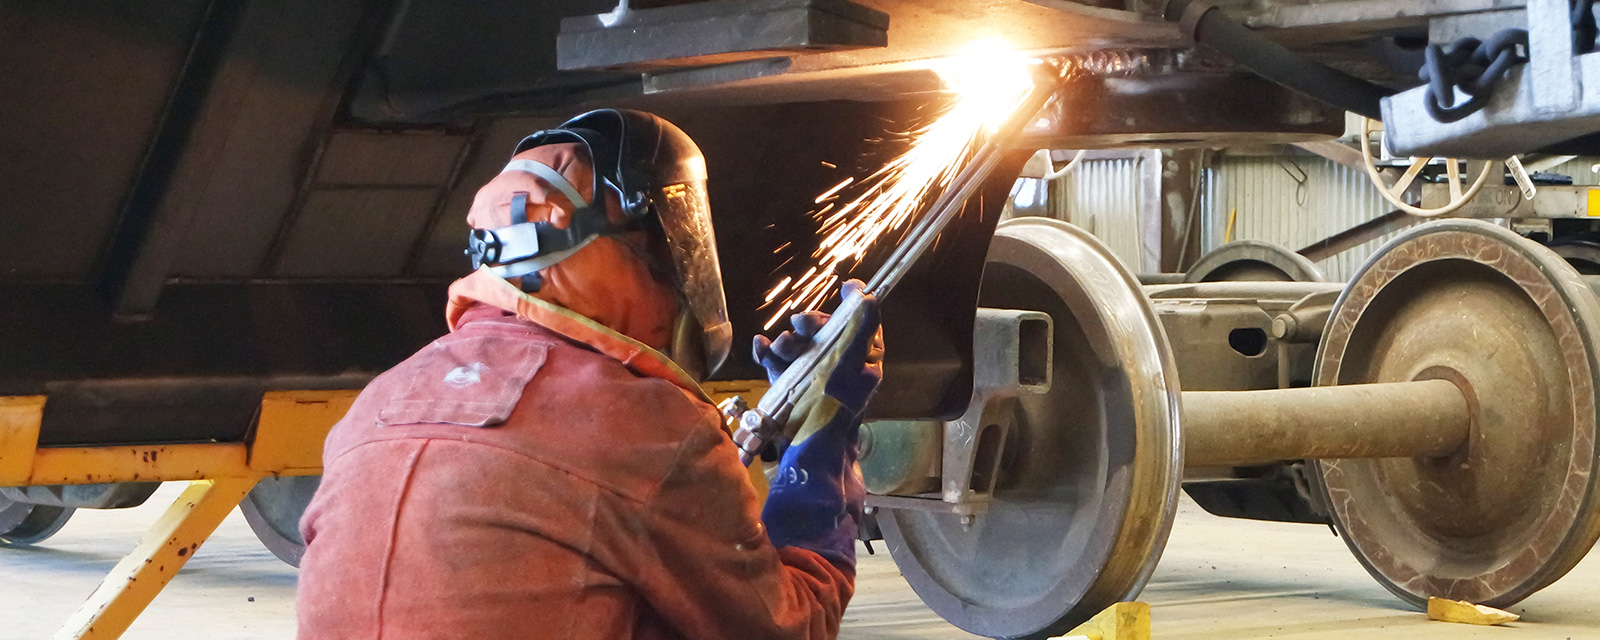 Experts in Fabrication, Manufacture, Service & Repair